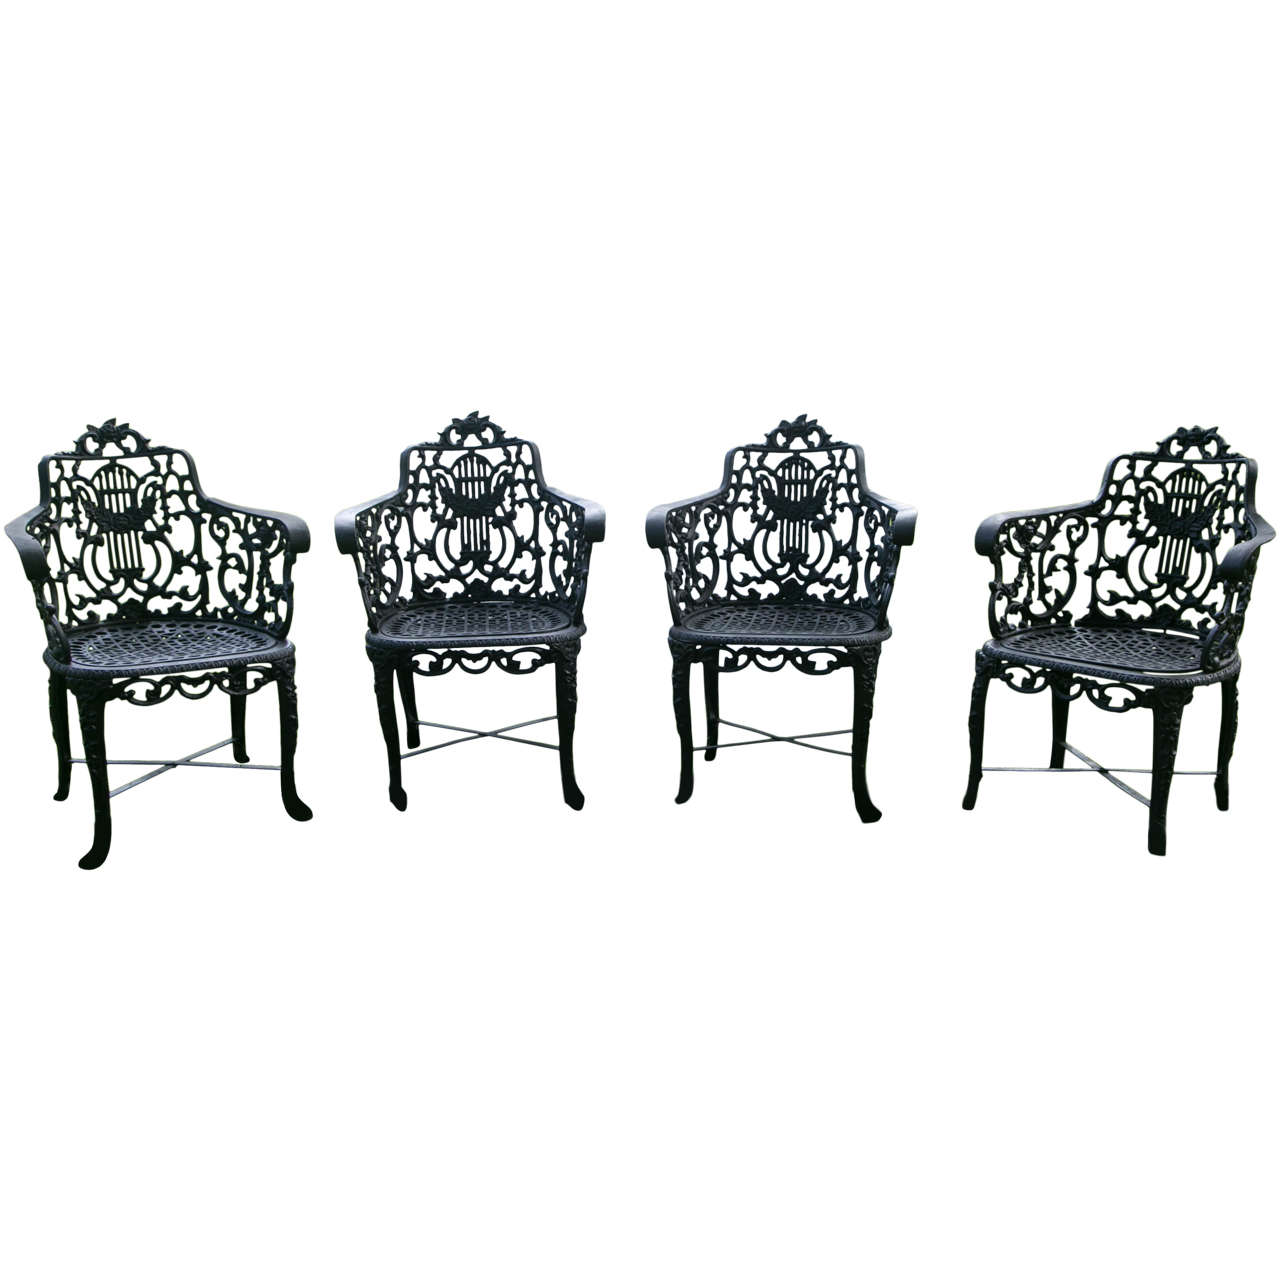 Armchairs with Lyre-Backs 1